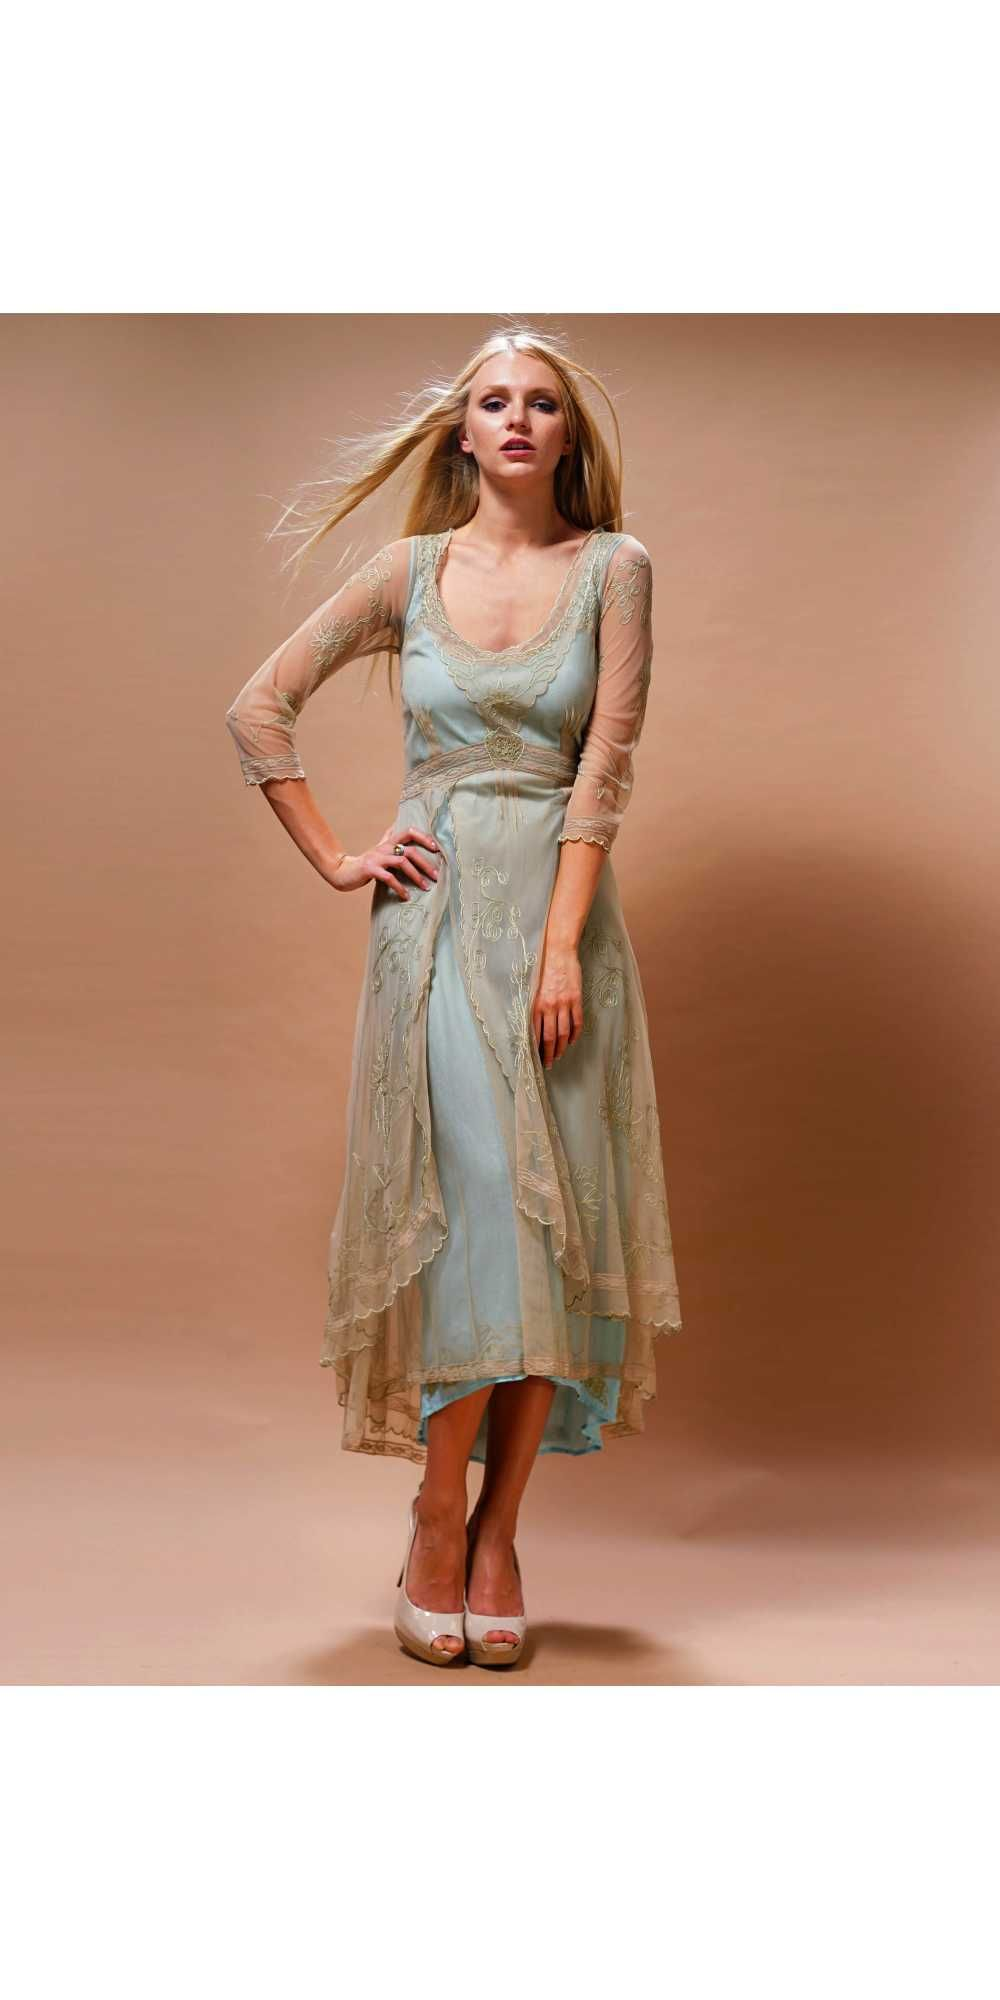 Downton Abbey Tea Party Gown in Sage/Turquoise by Nataya.  I love the soft colour combination!